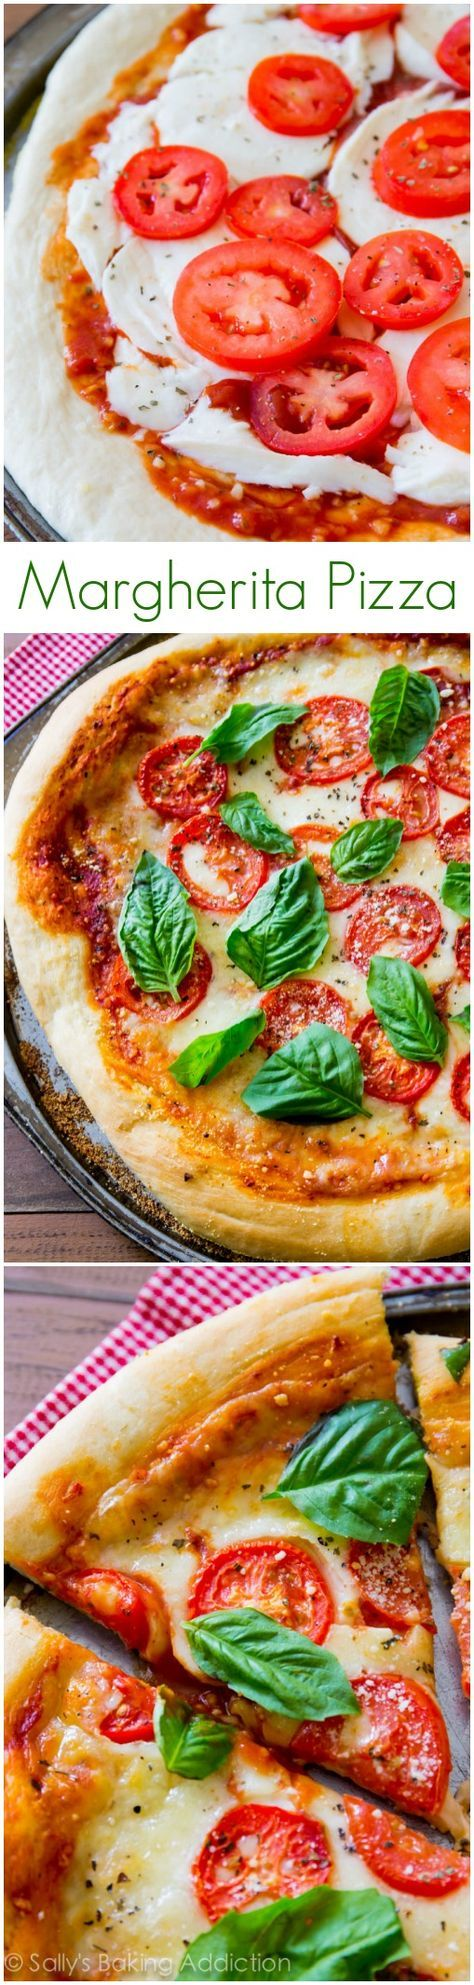 Sometimes you just can't beat fresh, simple, and classic Homemade Margherita Pizza. And this recipe is the BEST!